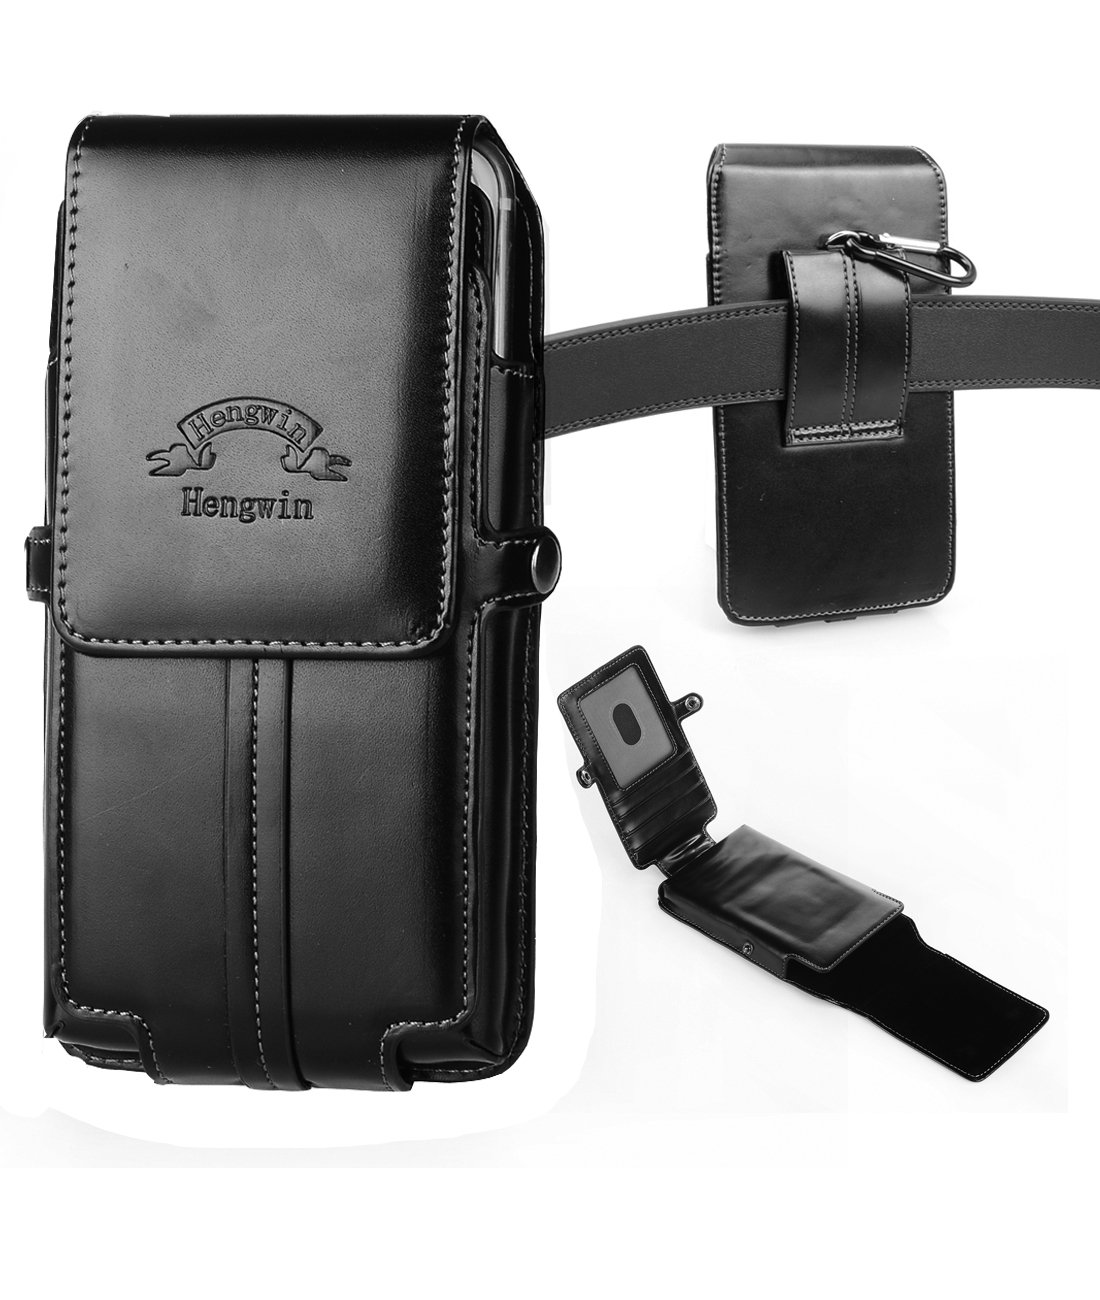 Hengwin Phone Holster, Vertical High Grade Smooth PU Leather Holster Belt Clip Pouch Carrying Case with Card Slots Compatible with iPhone Xs Max 8 7 Plus Galaxy Note 9 8 5 S9 S8 Plus Keychain